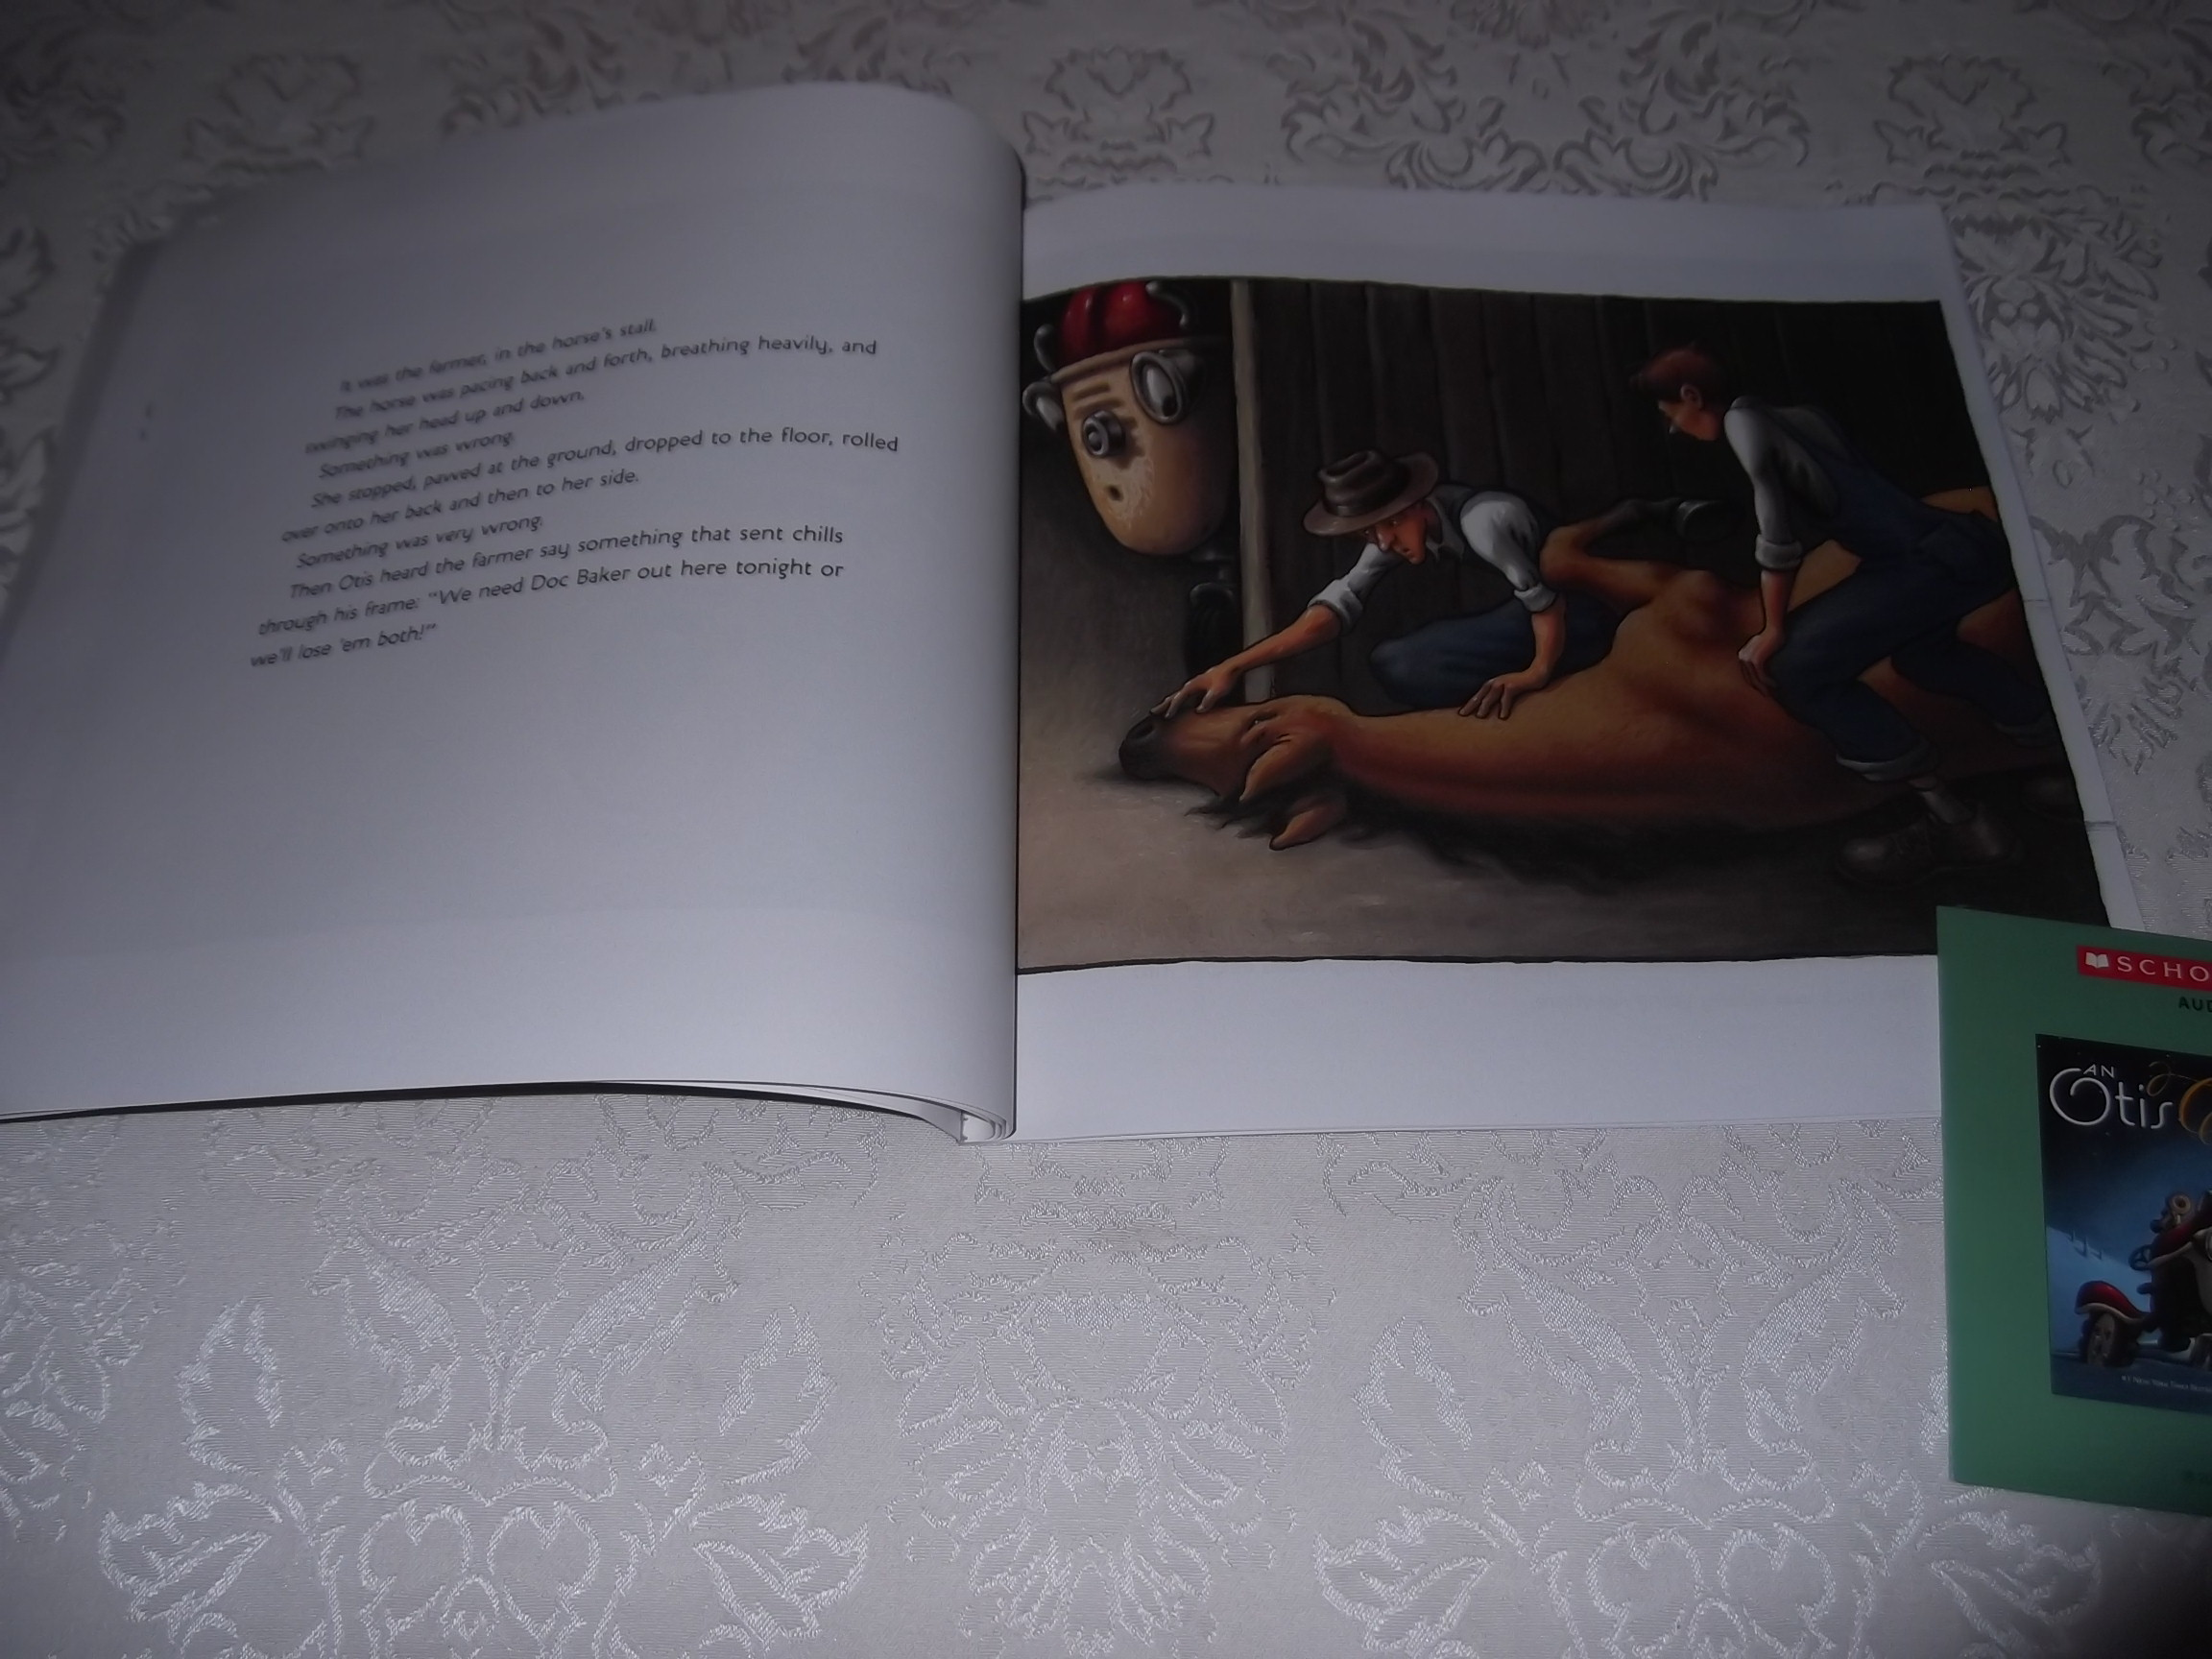 Image 4 of An Otis Christmas Loren Long Brand New Audio CD and Softcover